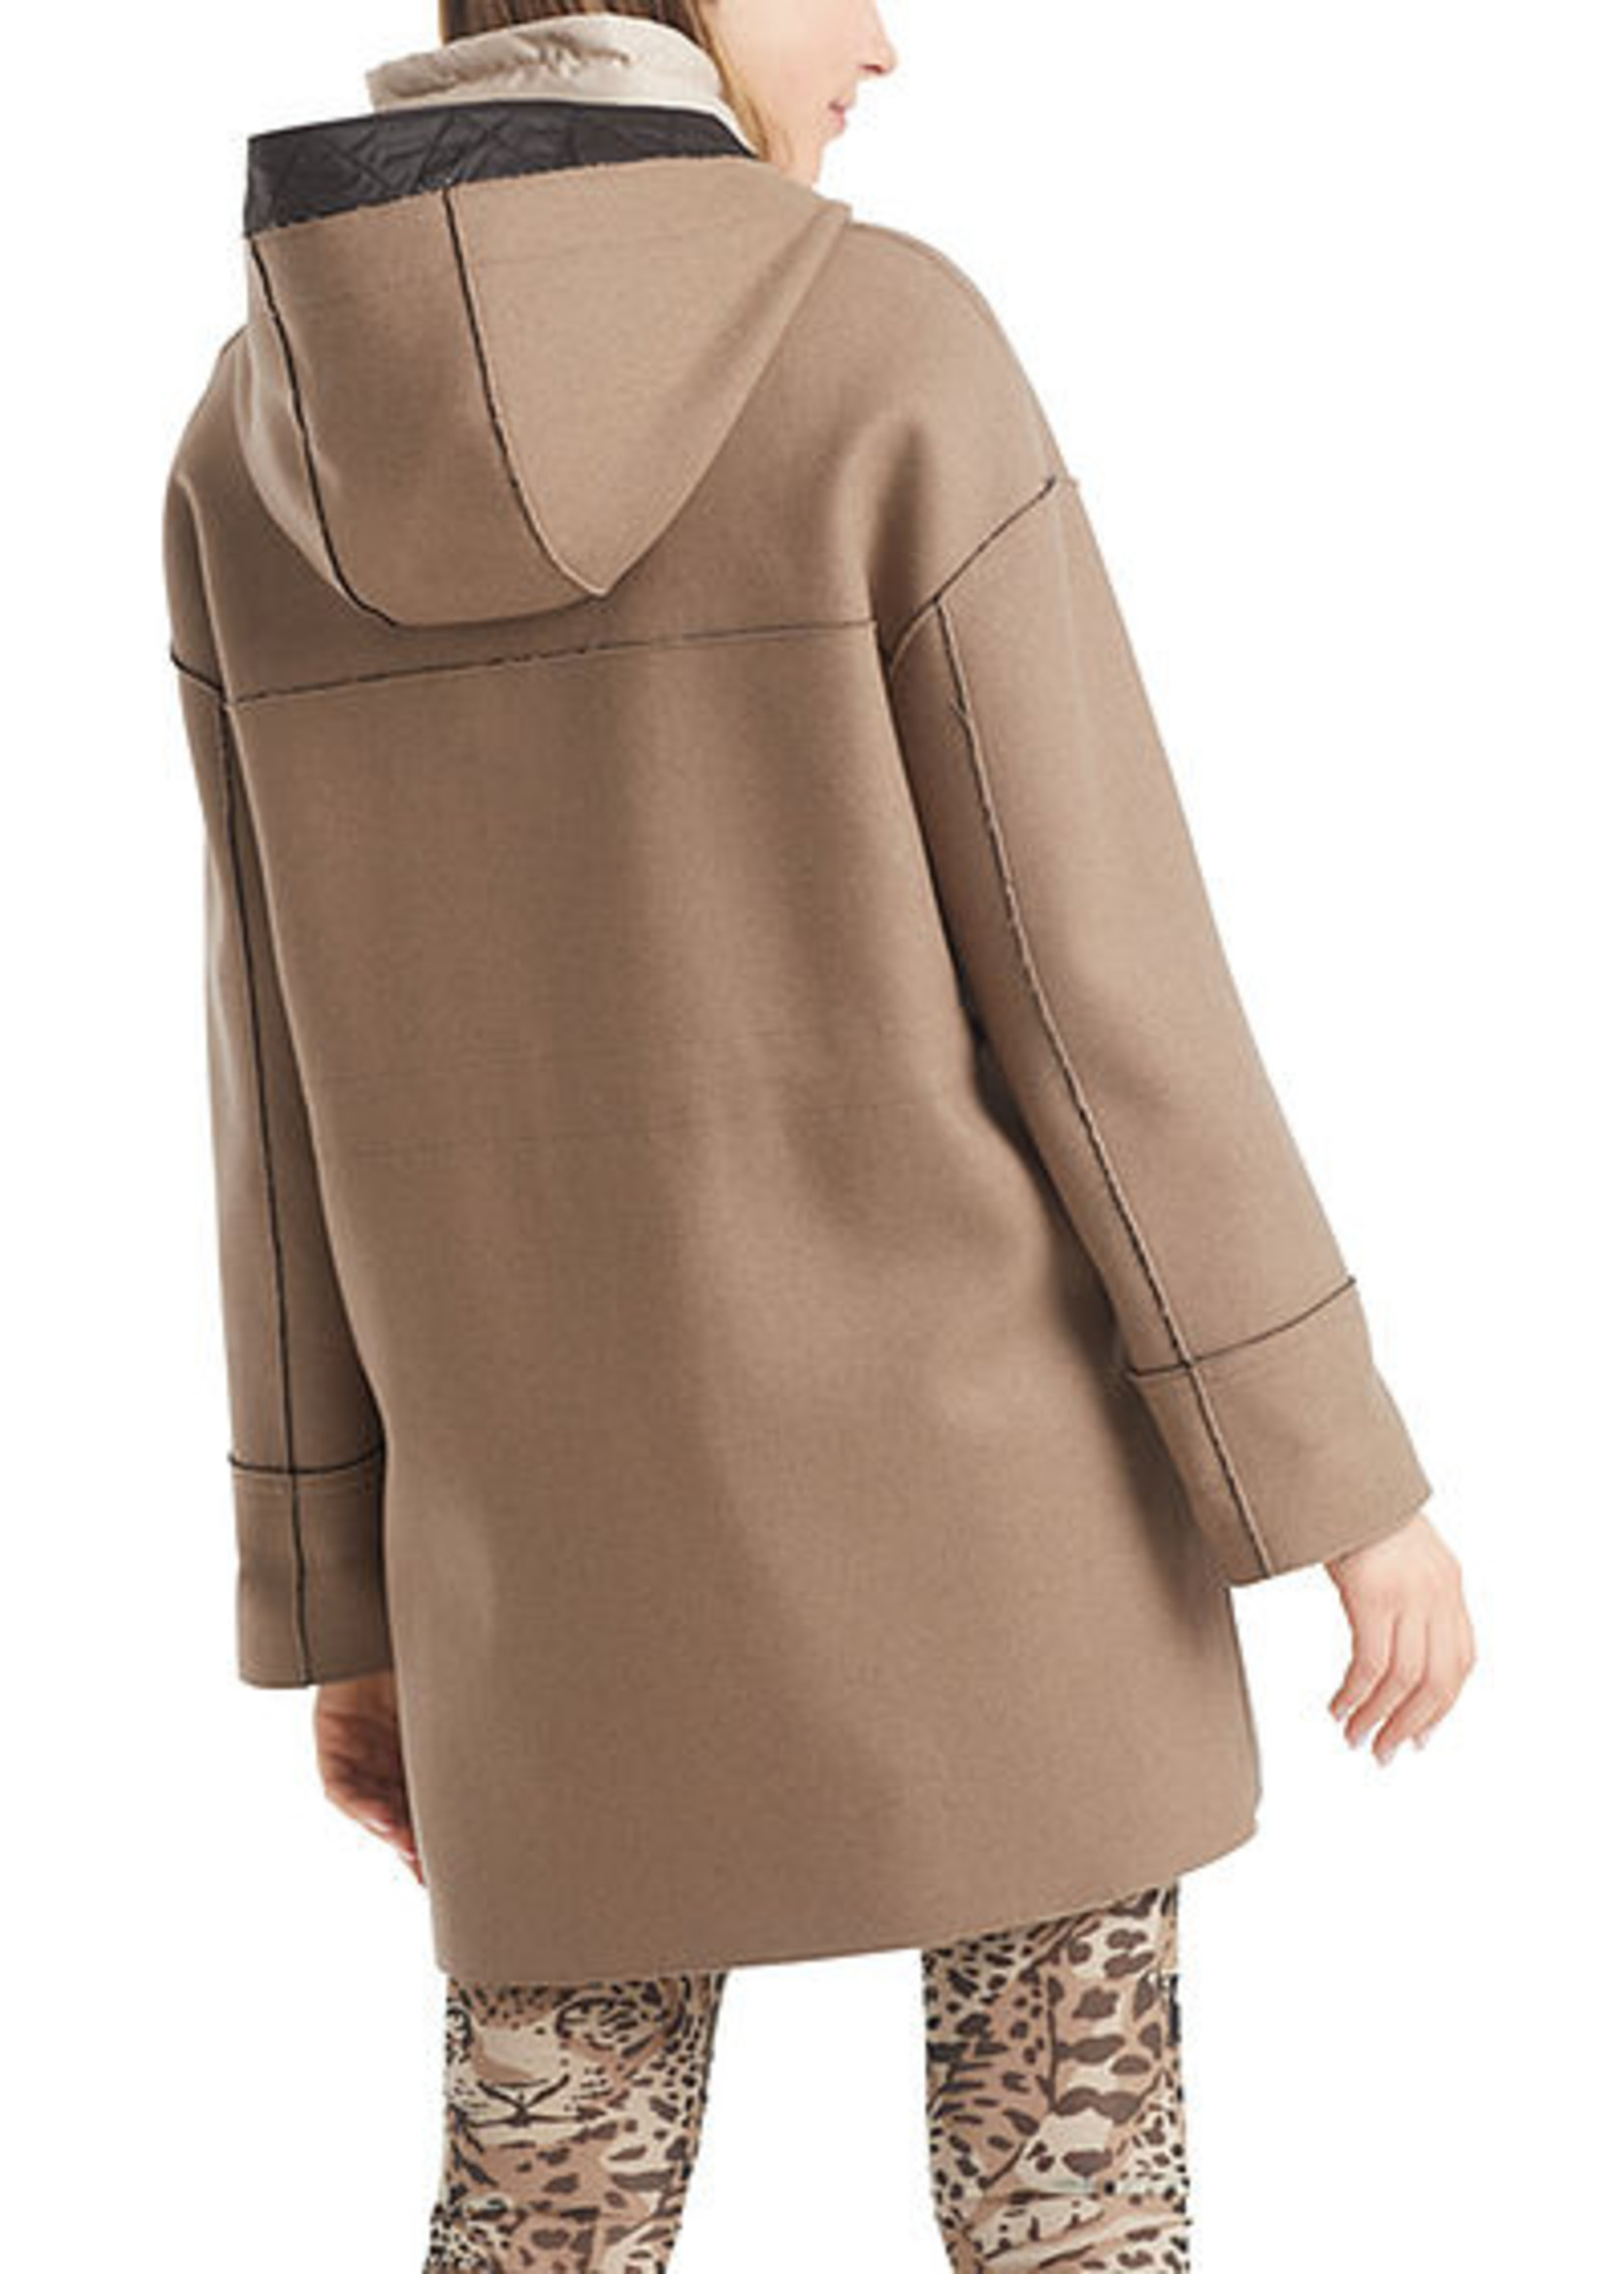 Marccain Sports Outdoor Jack RS 12.02 W85 croissant